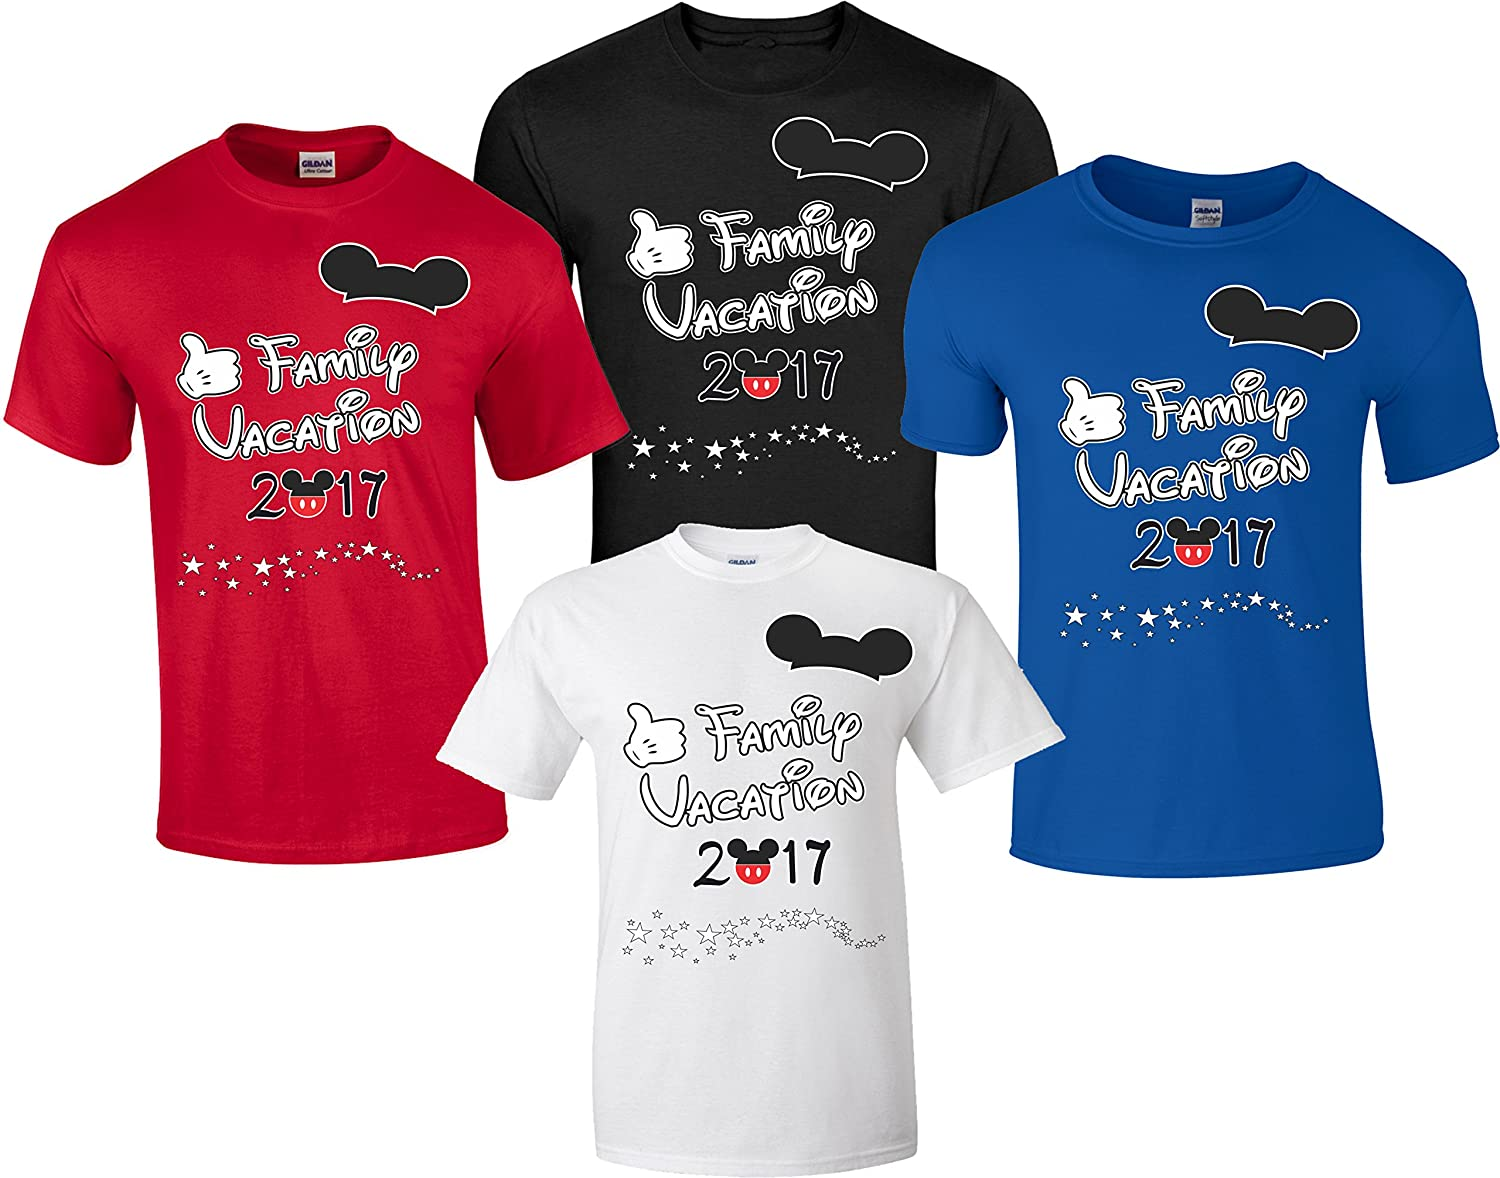 fd92dab3 Amazon.com: Disney Family Vacation Any Year Matching T-Shirts Cute Mickey T- Shirts: Sports & Outdoors